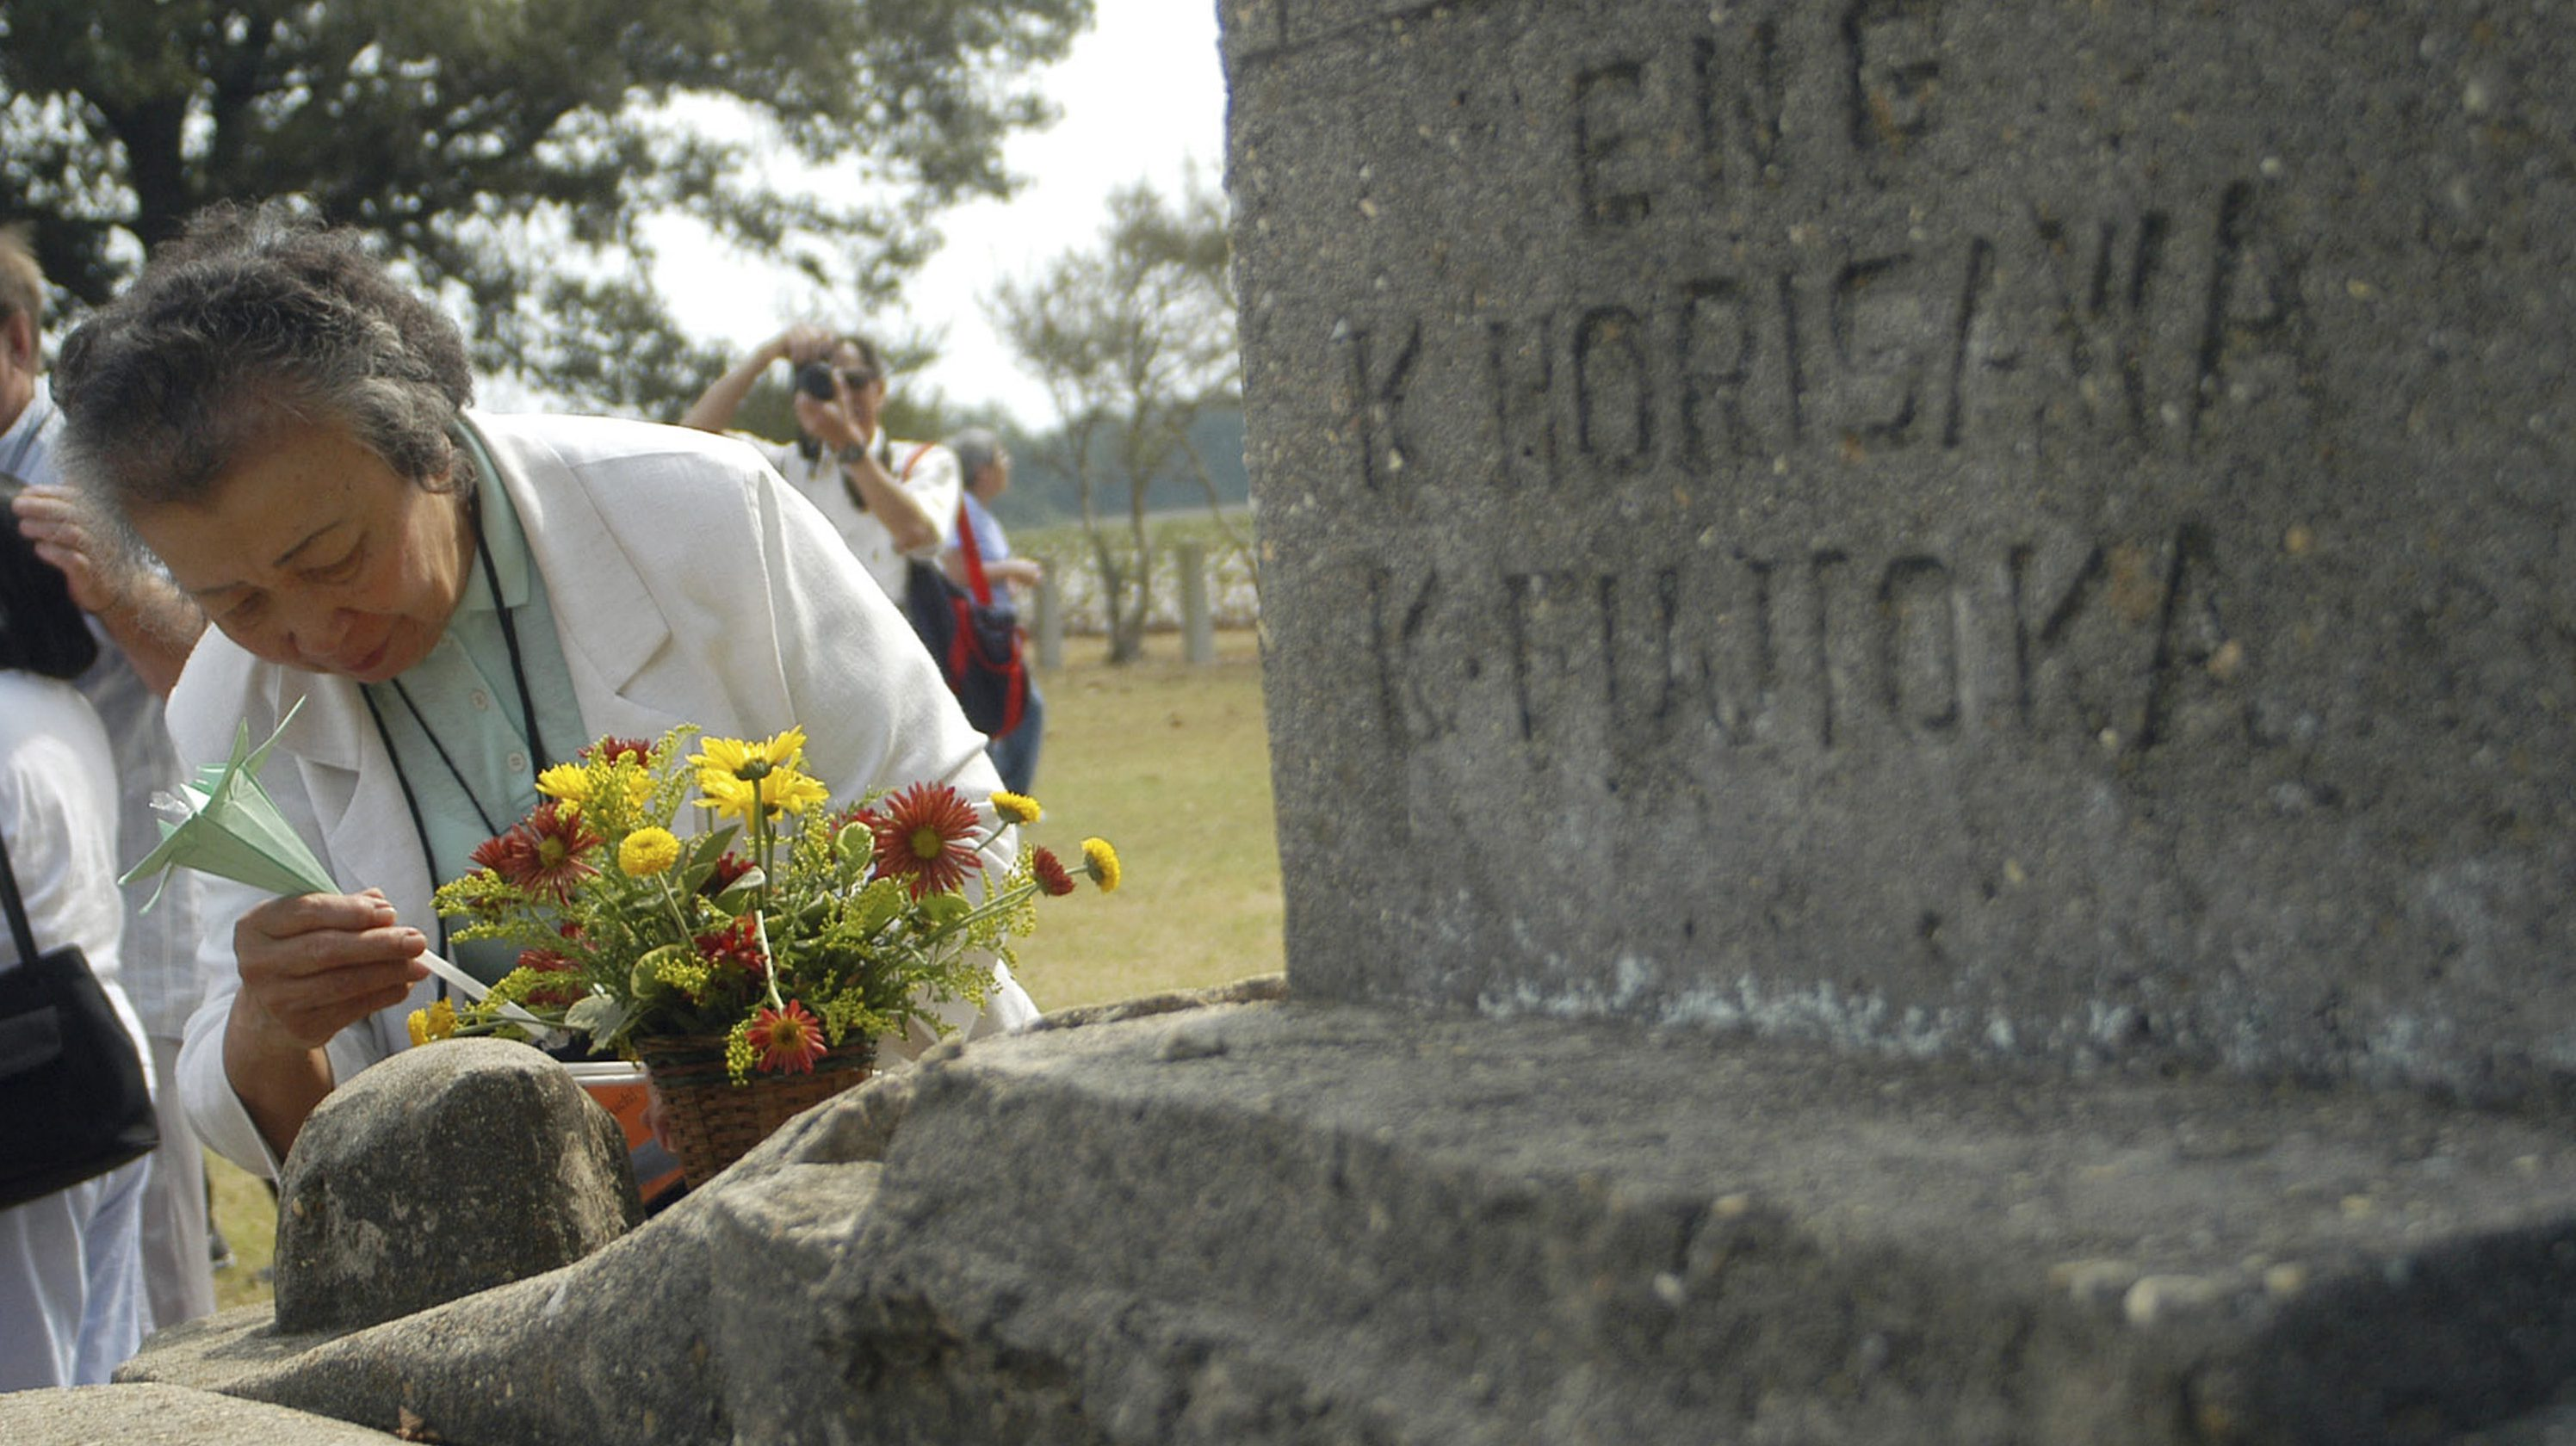 In this file photo taken Sept. 26, 2004, Nobu Sekiguchi of Pasadena, MD., decorates a flower arraignment with a handmade flower on a memorial  erected for the inhabitants of a Japanese-American World War II interment camp in Rohwer, Ark.